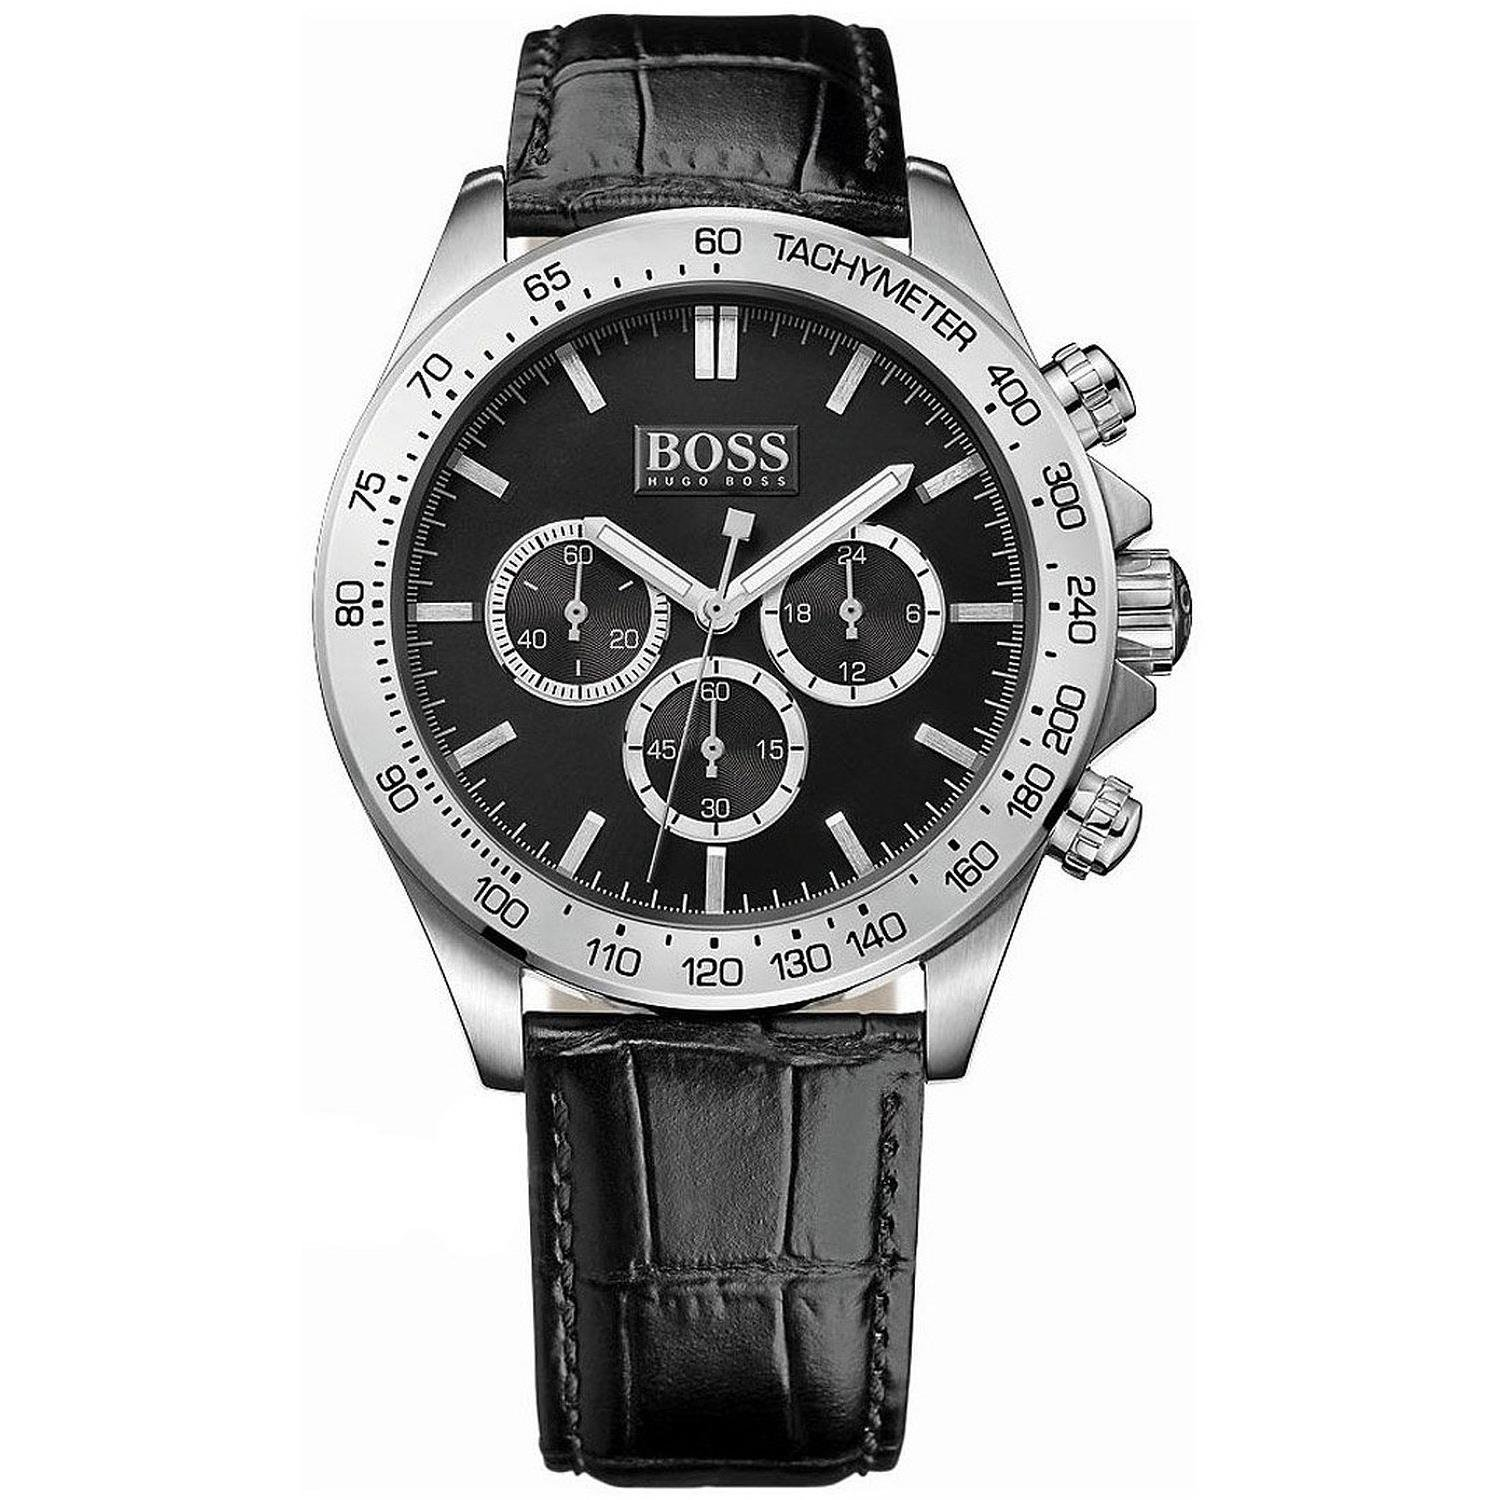 Hugo Boss Herren Men's Chronograph Analog Sportart Quartz Reloj 1513178